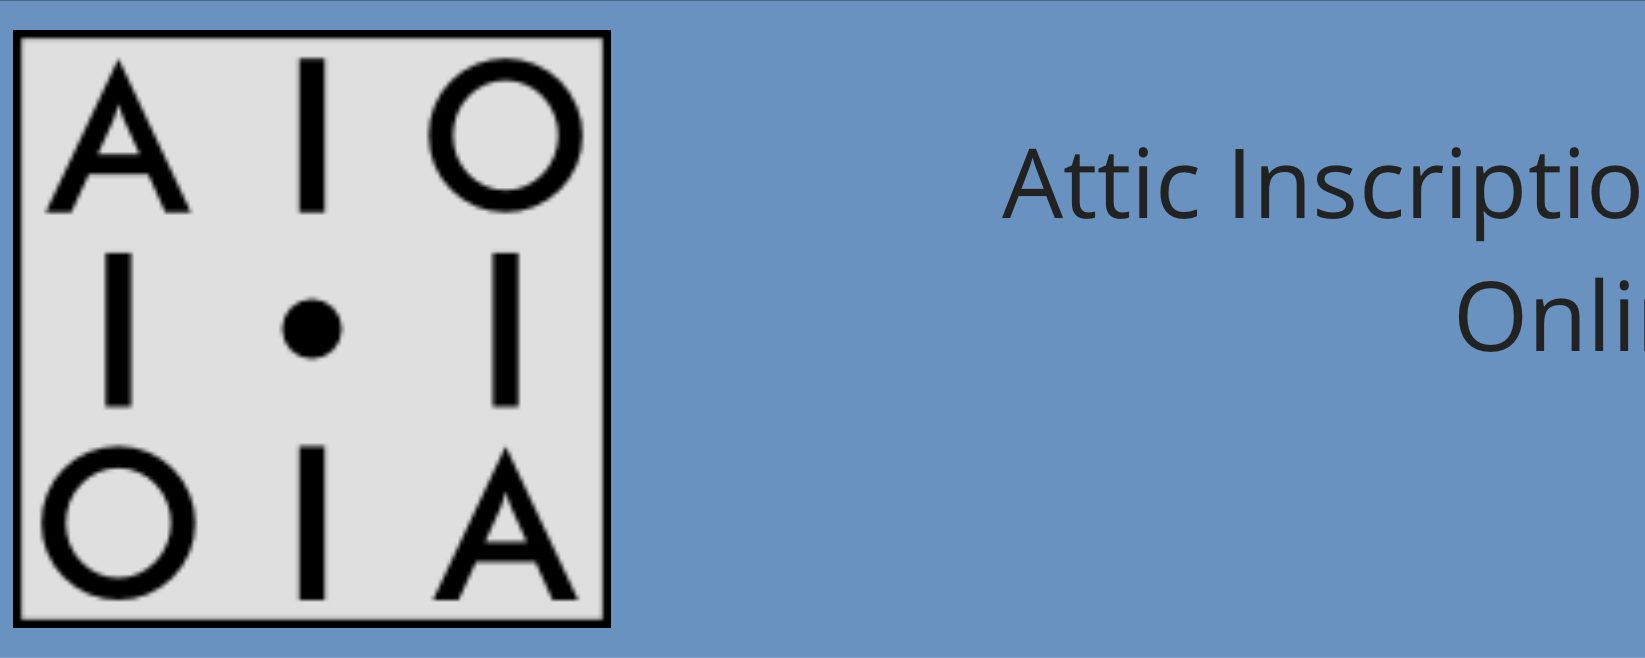 Attic Inscriptions Online: OA Resources to Support the Teaching of Classical Subjects